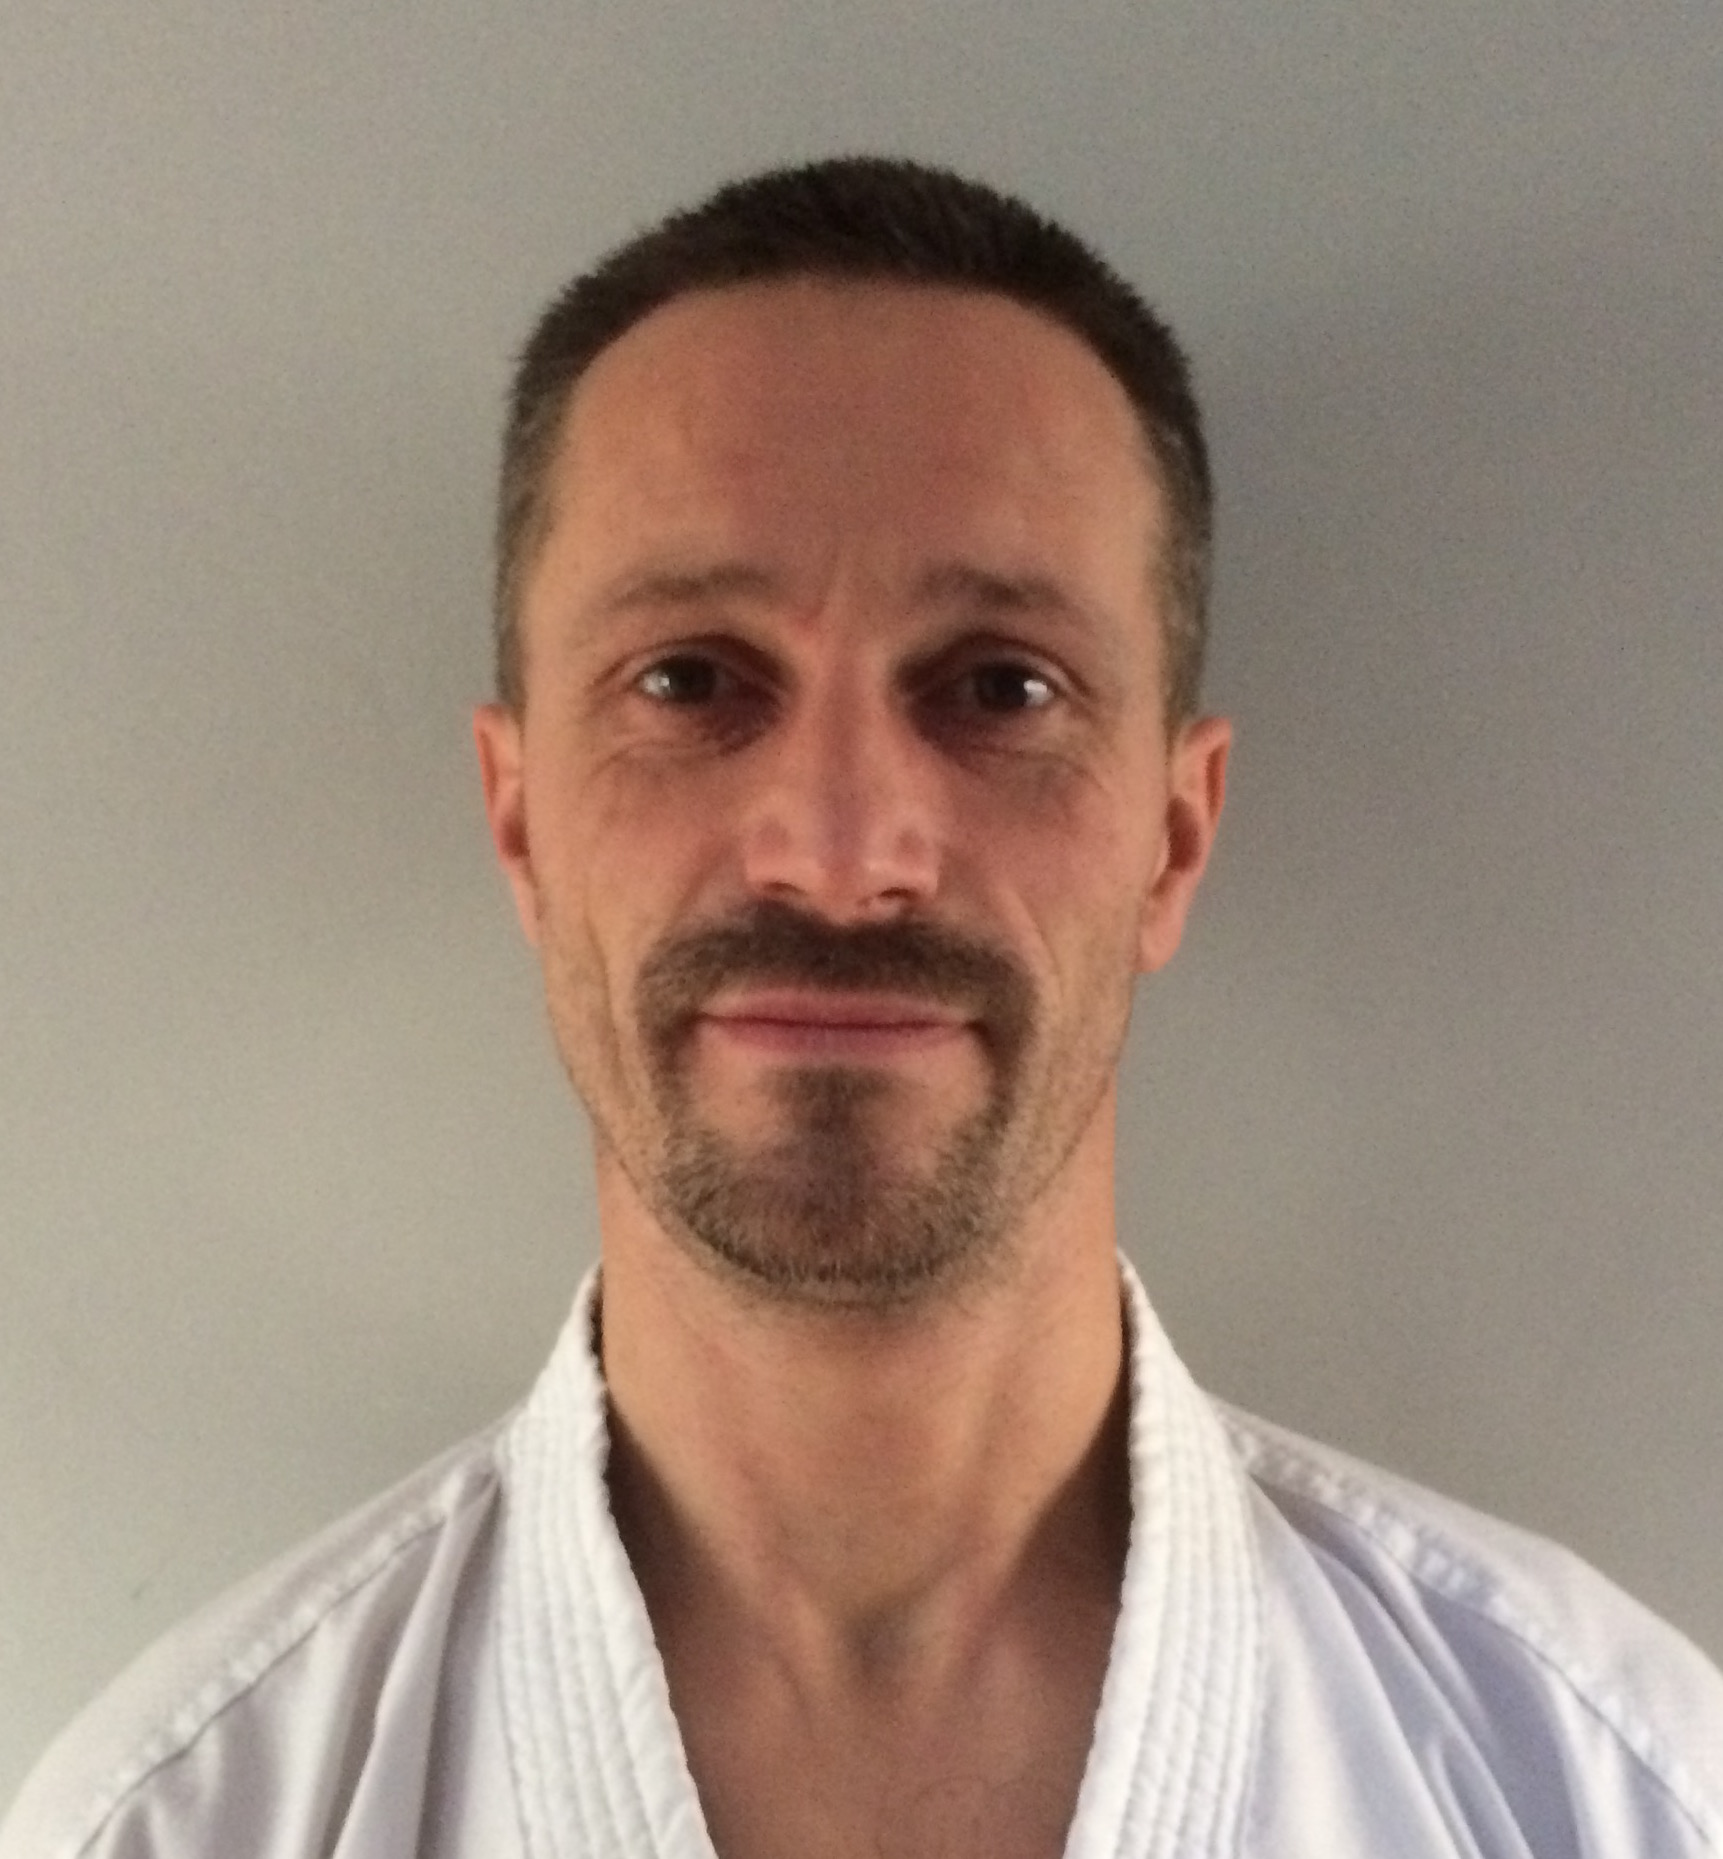 Taekwondo instructor: Mr C Hourican